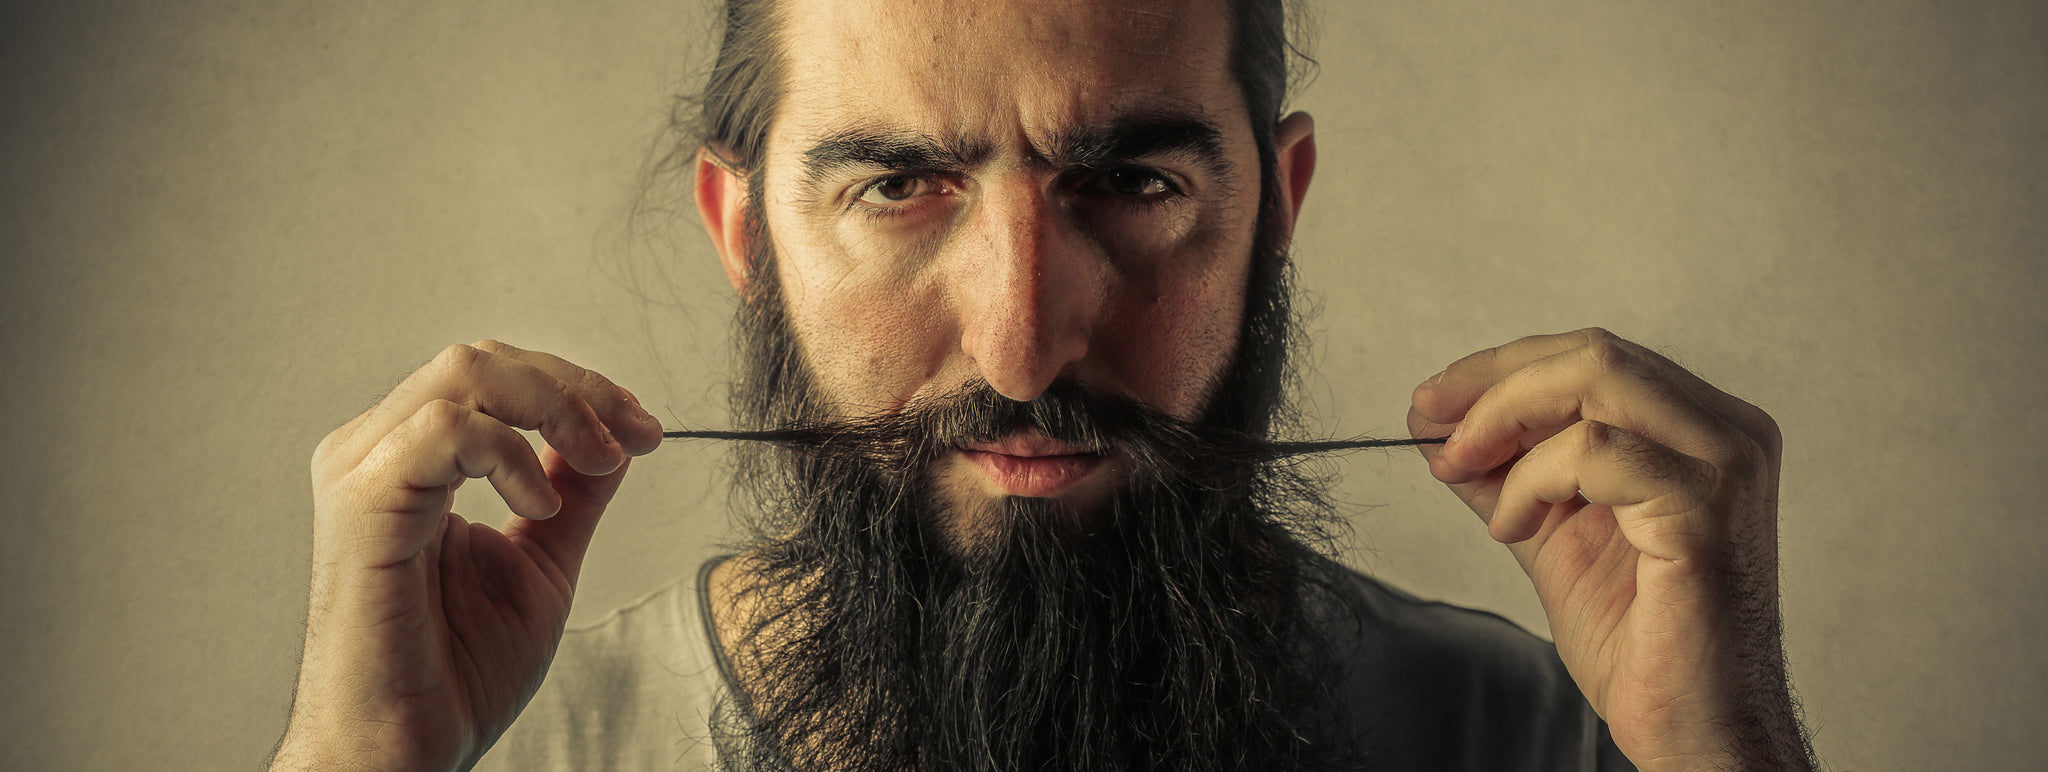 Stop Touching Your Moustache - The Vintage Grooming Co